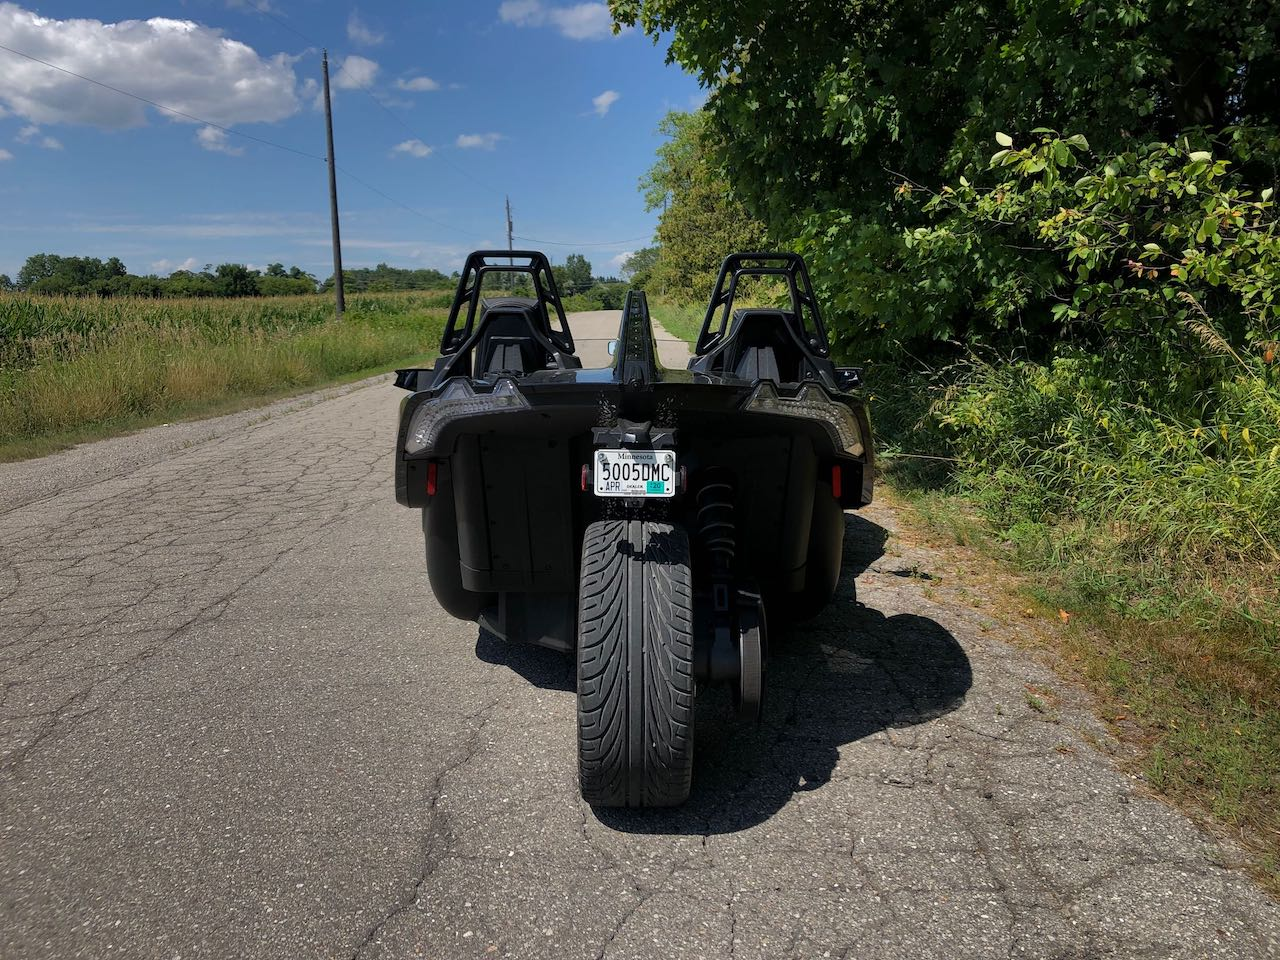 Review 2019 Polaris Slingshot SL